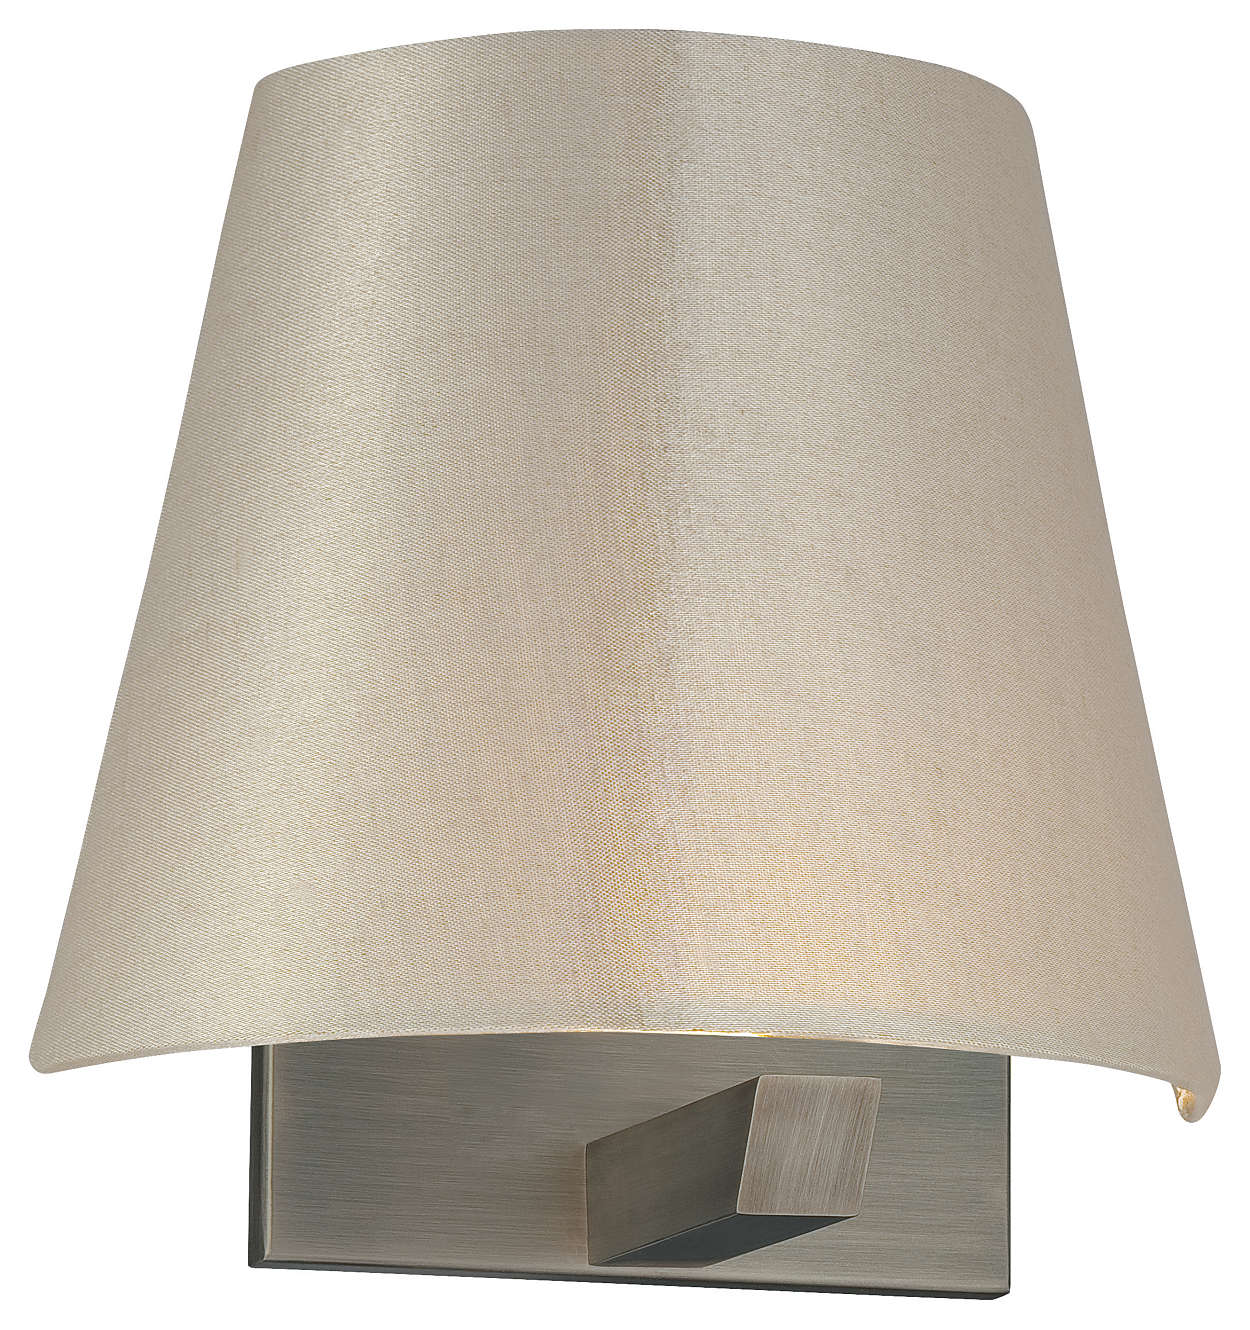 Beaux LED Wall Sconce in Gun Metal finish